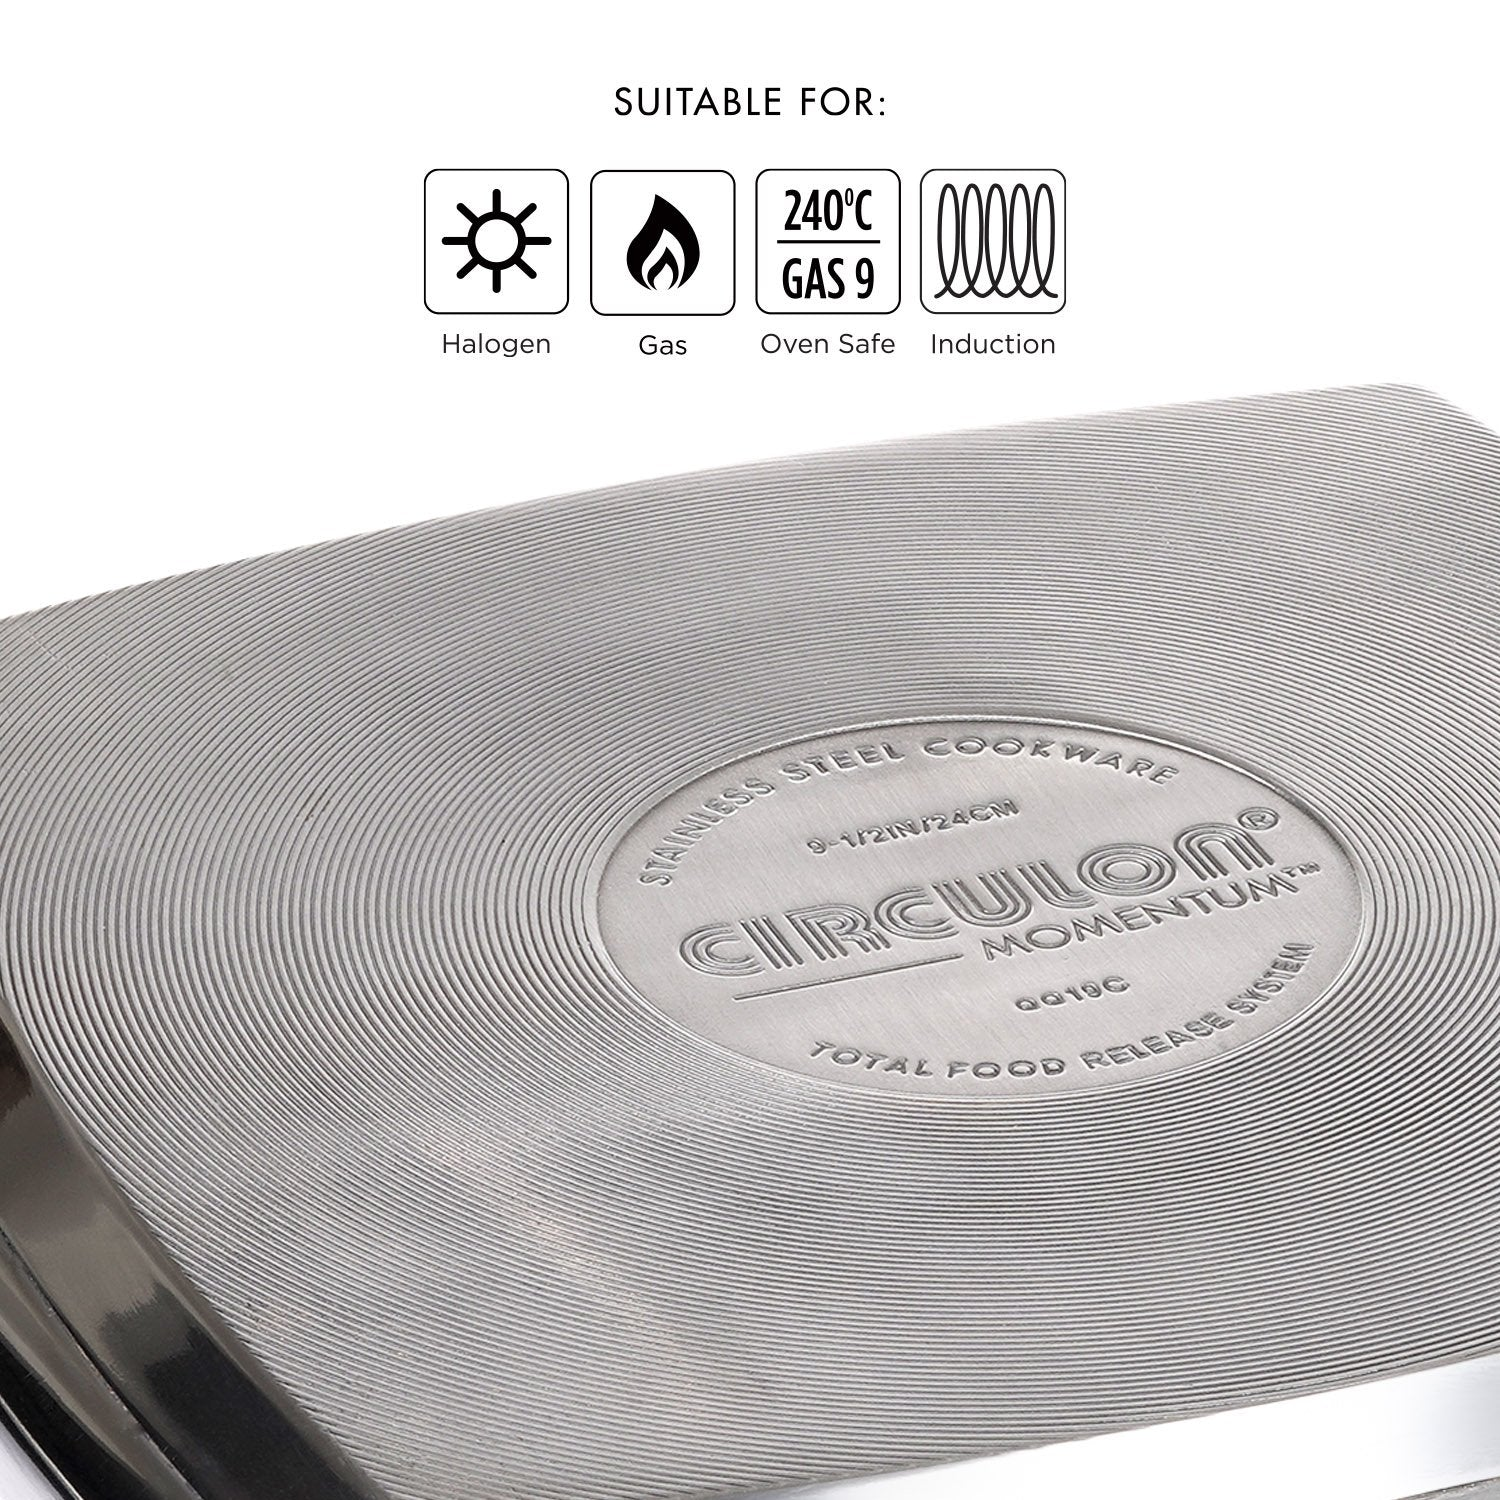 Circulon Momentum Non-Stick + Stainless Steel Grill pan, 24cm - Pots and Pans